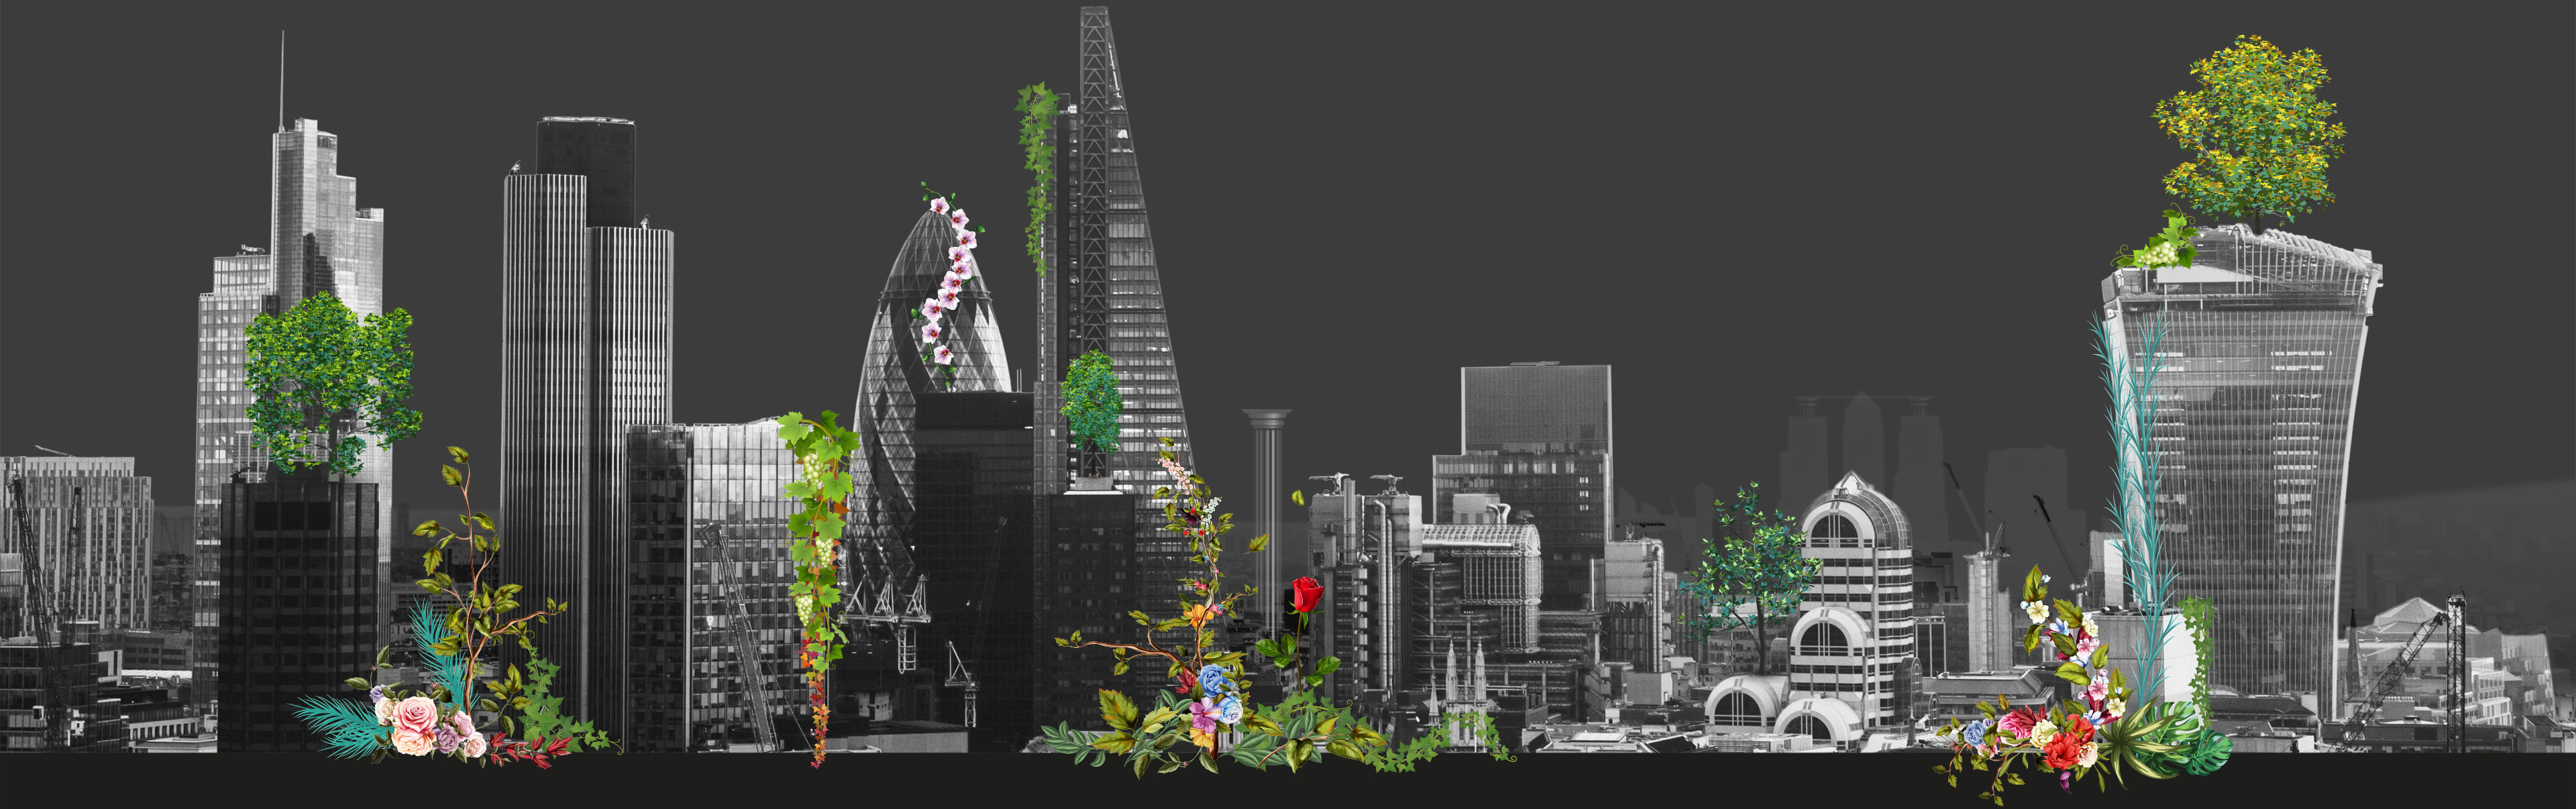 cityscape with layered plant collage